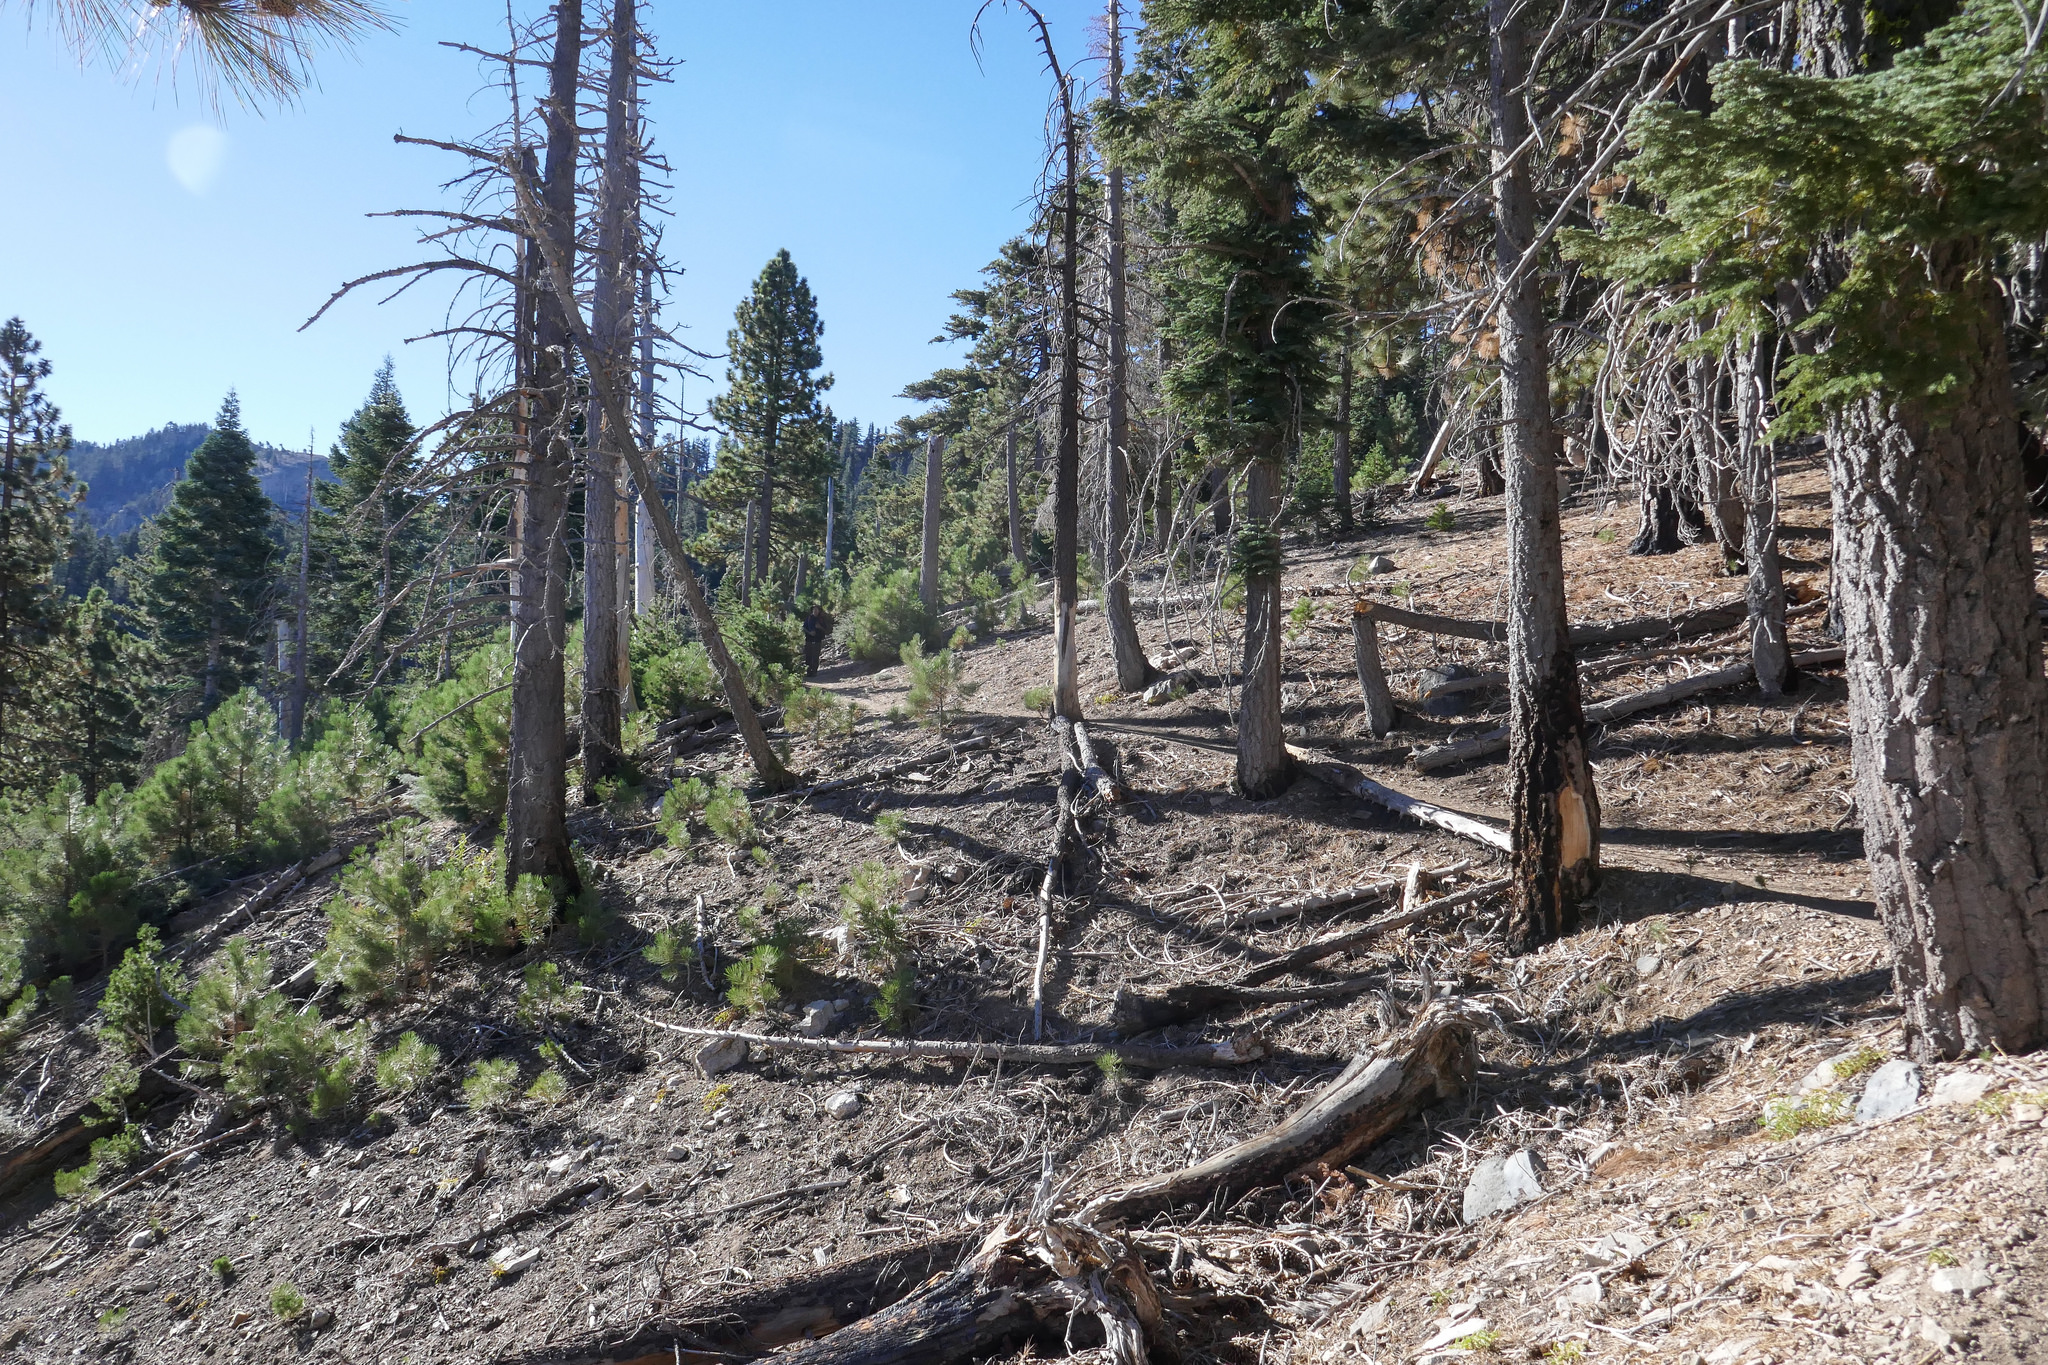 We hike along a more exposed section of trail. There are many baby pine trees here.